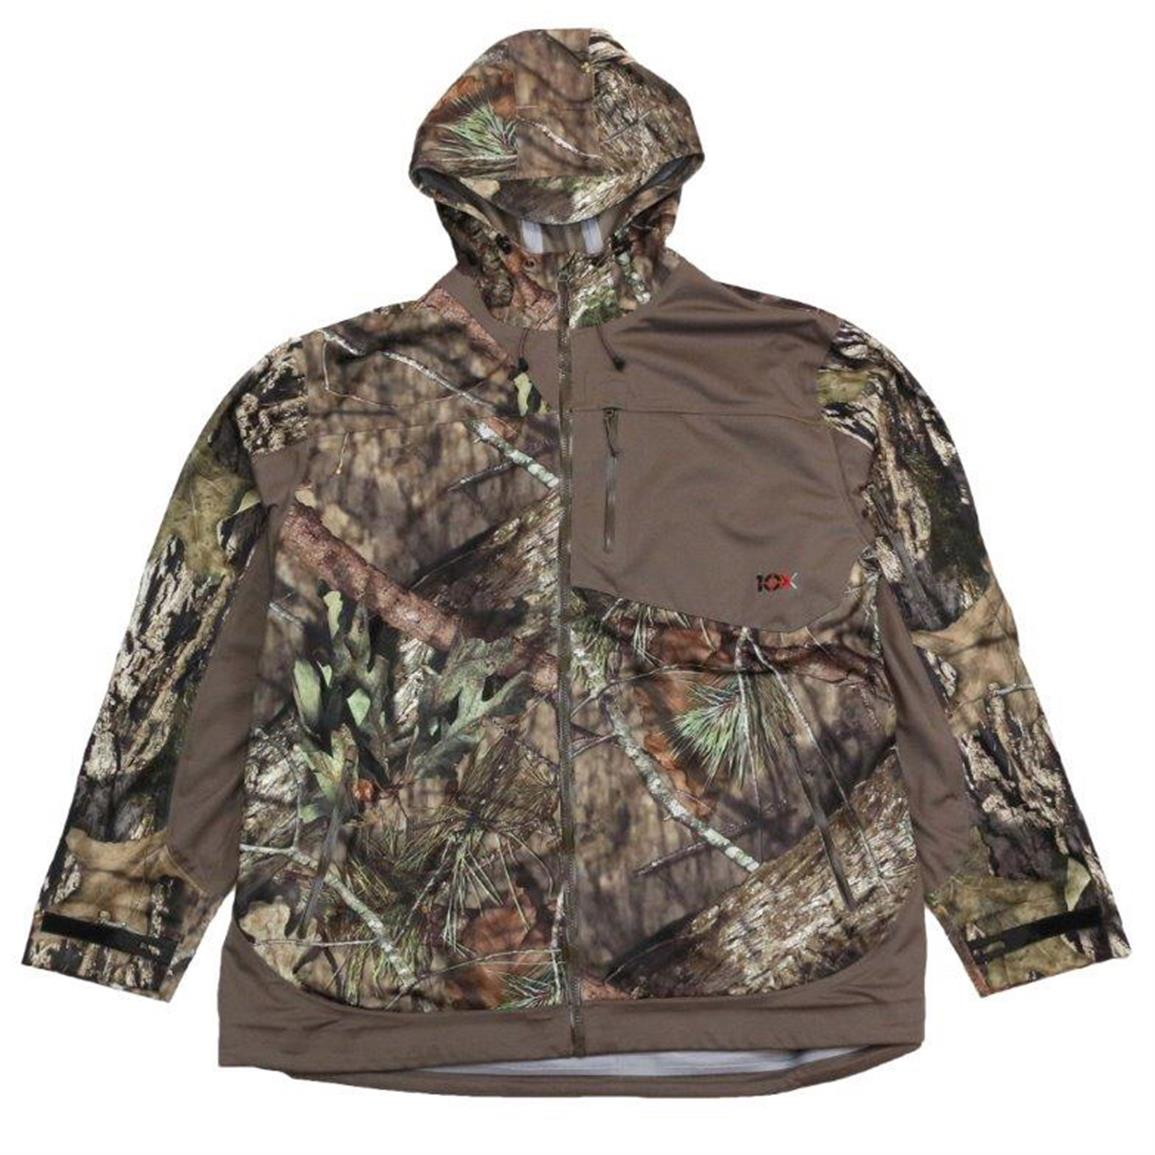 10X Men's Rain Jacket, Realtree Xtra